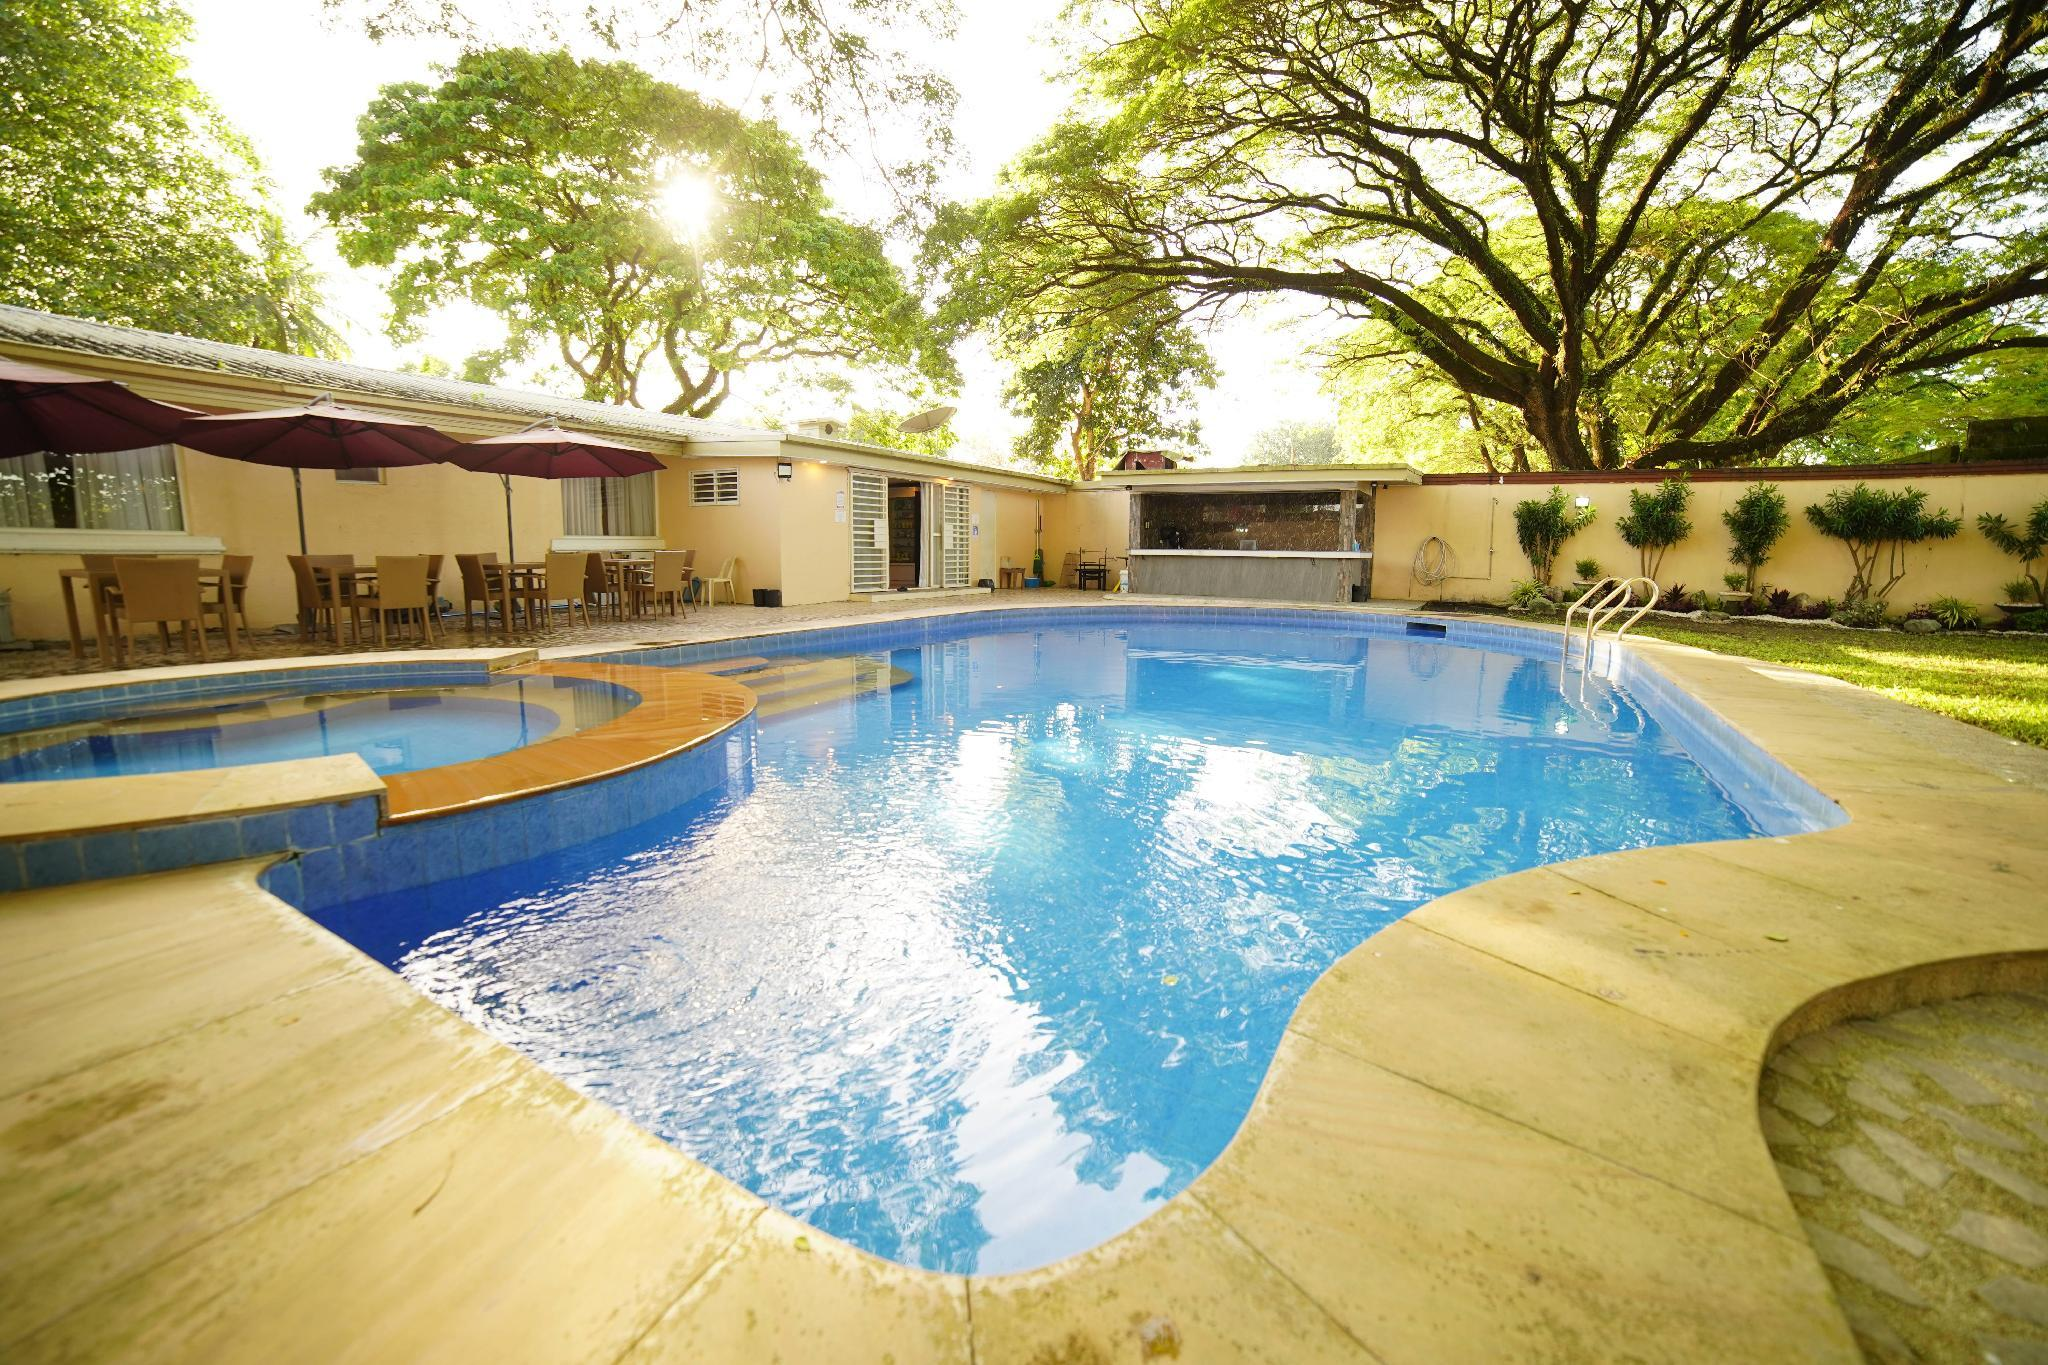 DPARK POOL VILLA  4BR W  Netflix  For 14 Persons